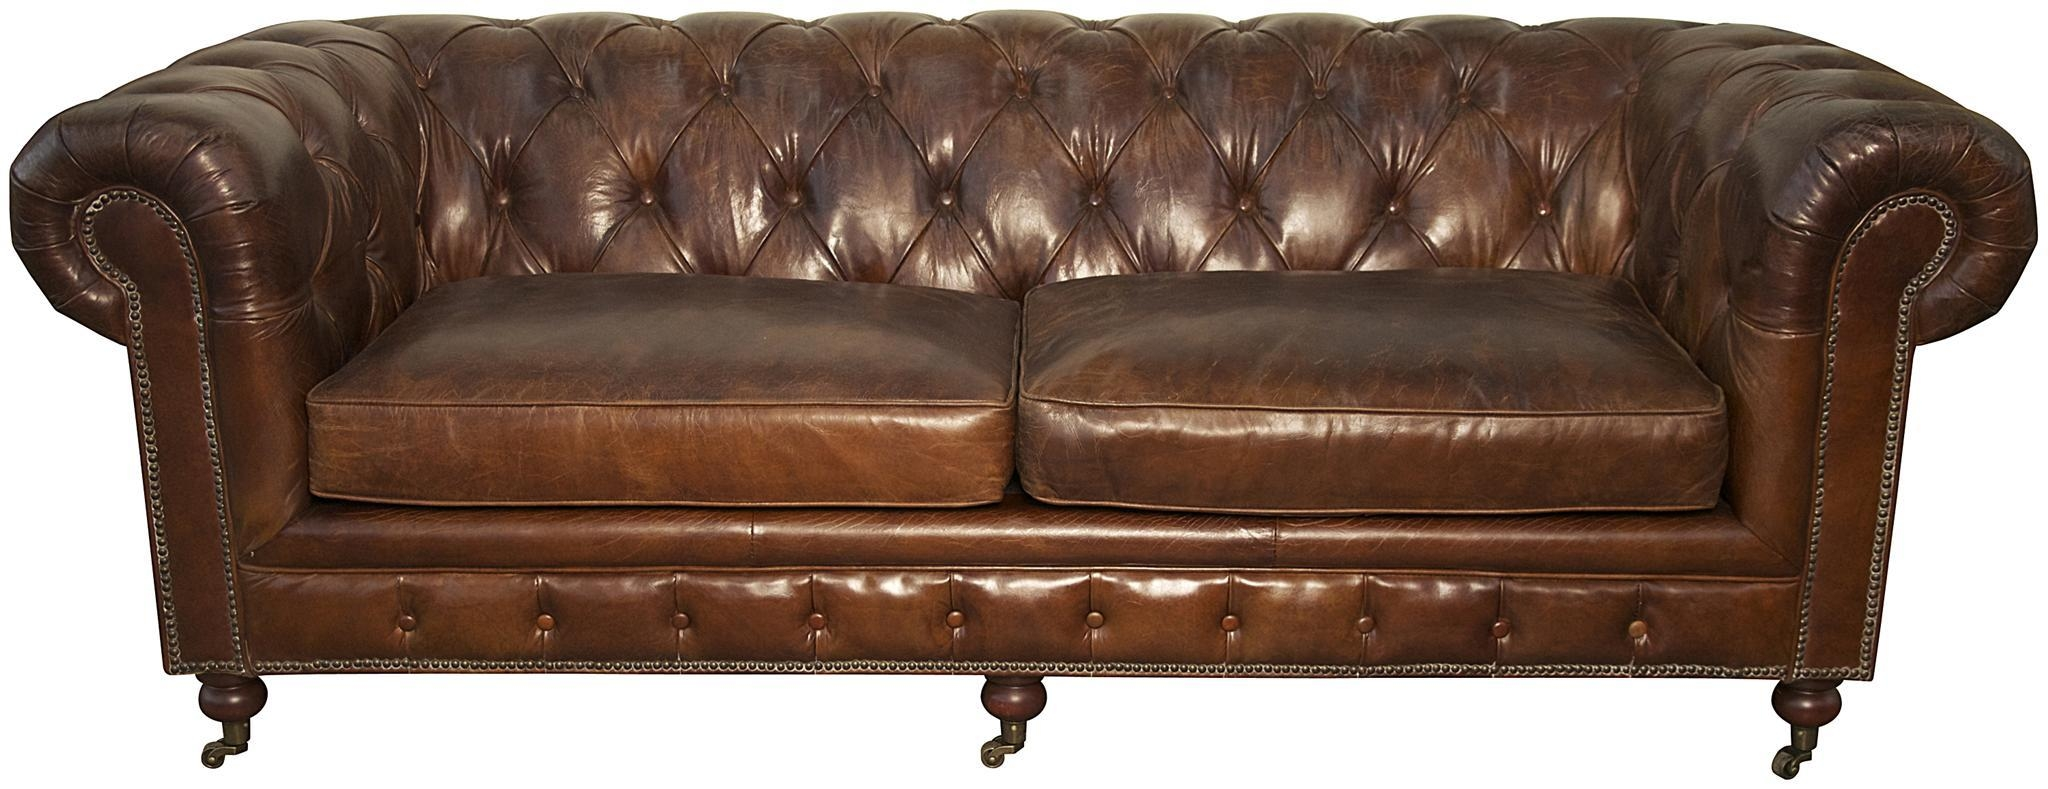 Sofas Center : Leather Tufted Sofa Seat Too With Rolled Arms White For Brown Leather Tufted Sofas (Image 19 of 20)